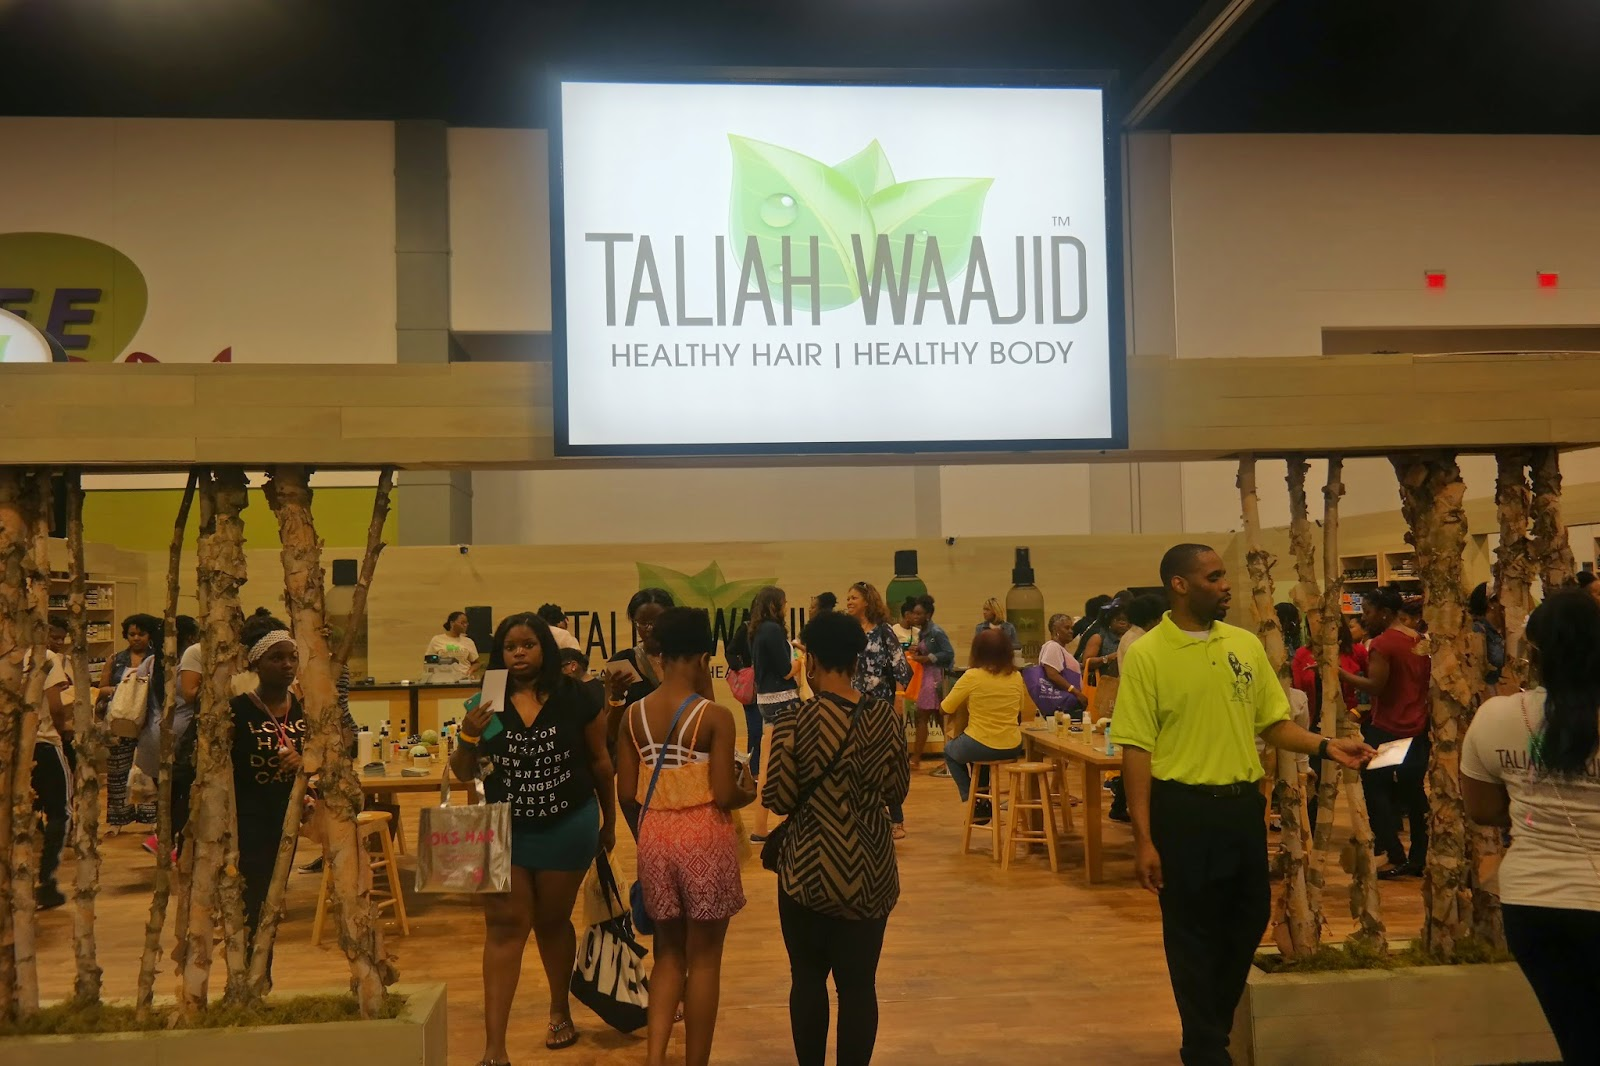 f95f20ddc68 My goodness!! It s been an intense last couple of days for sure. Not only  did I get to attend the show but I also signed up for Taliah Waajid s  intense 3 ...